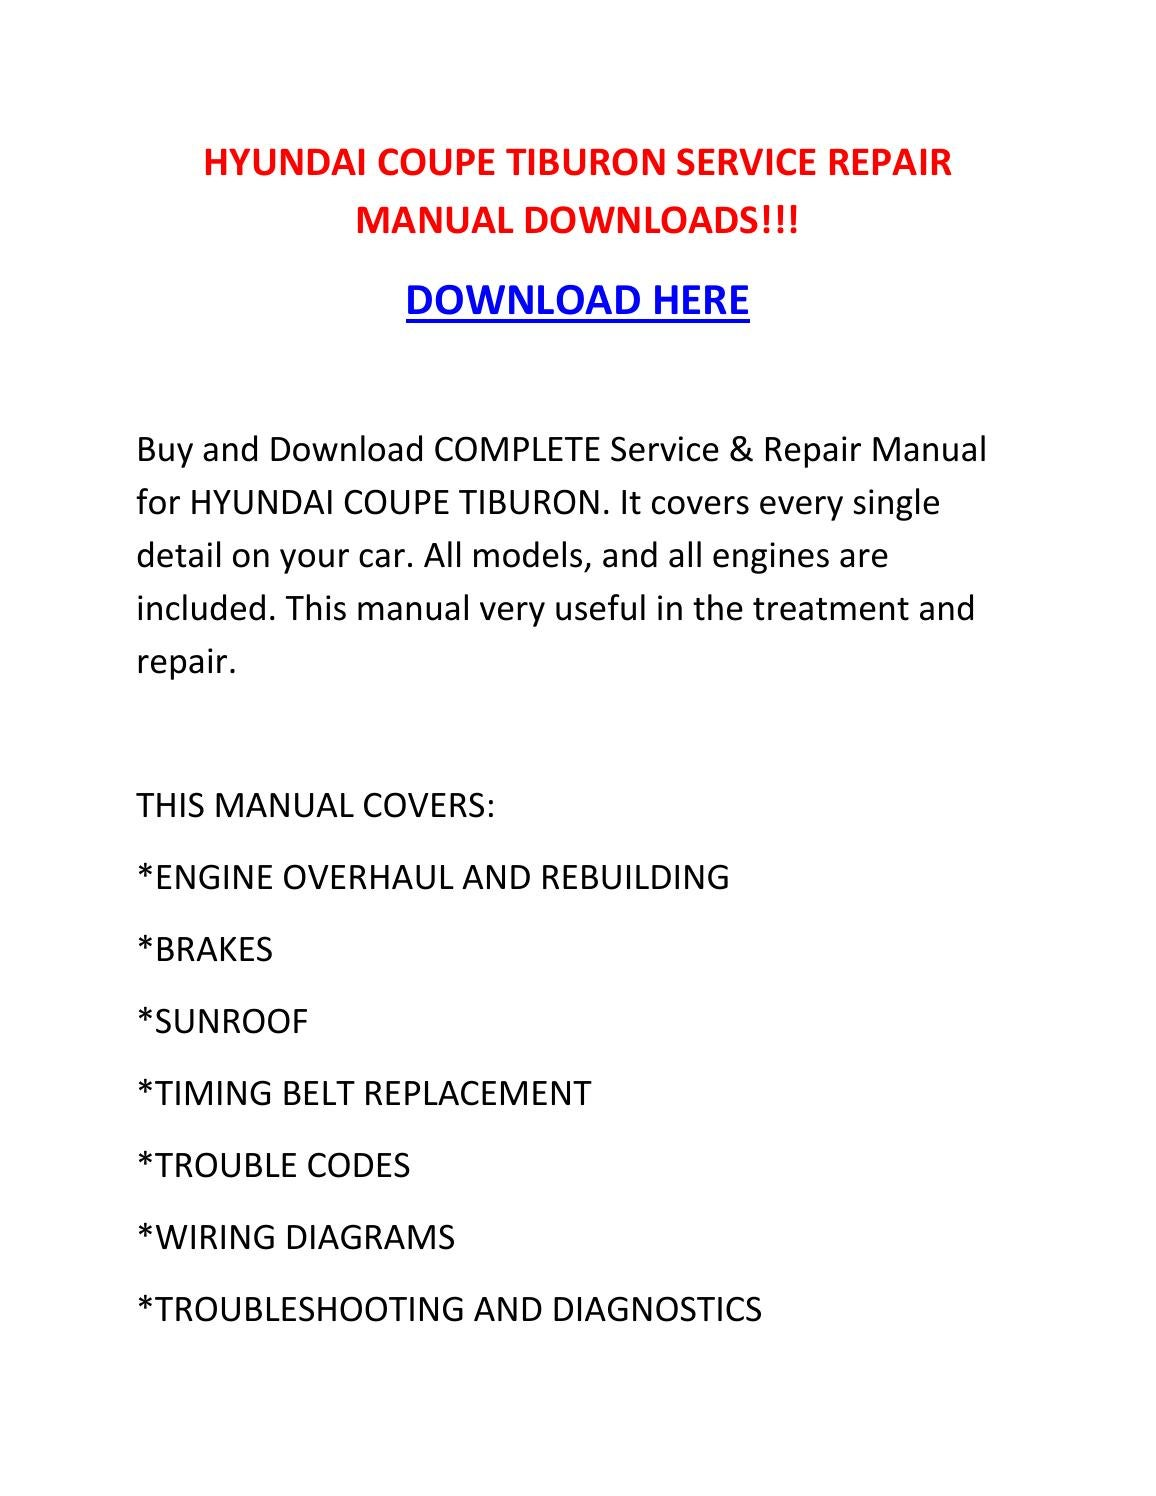 Hyundai Coupe Tiburon Service Repair Manual Downloads By